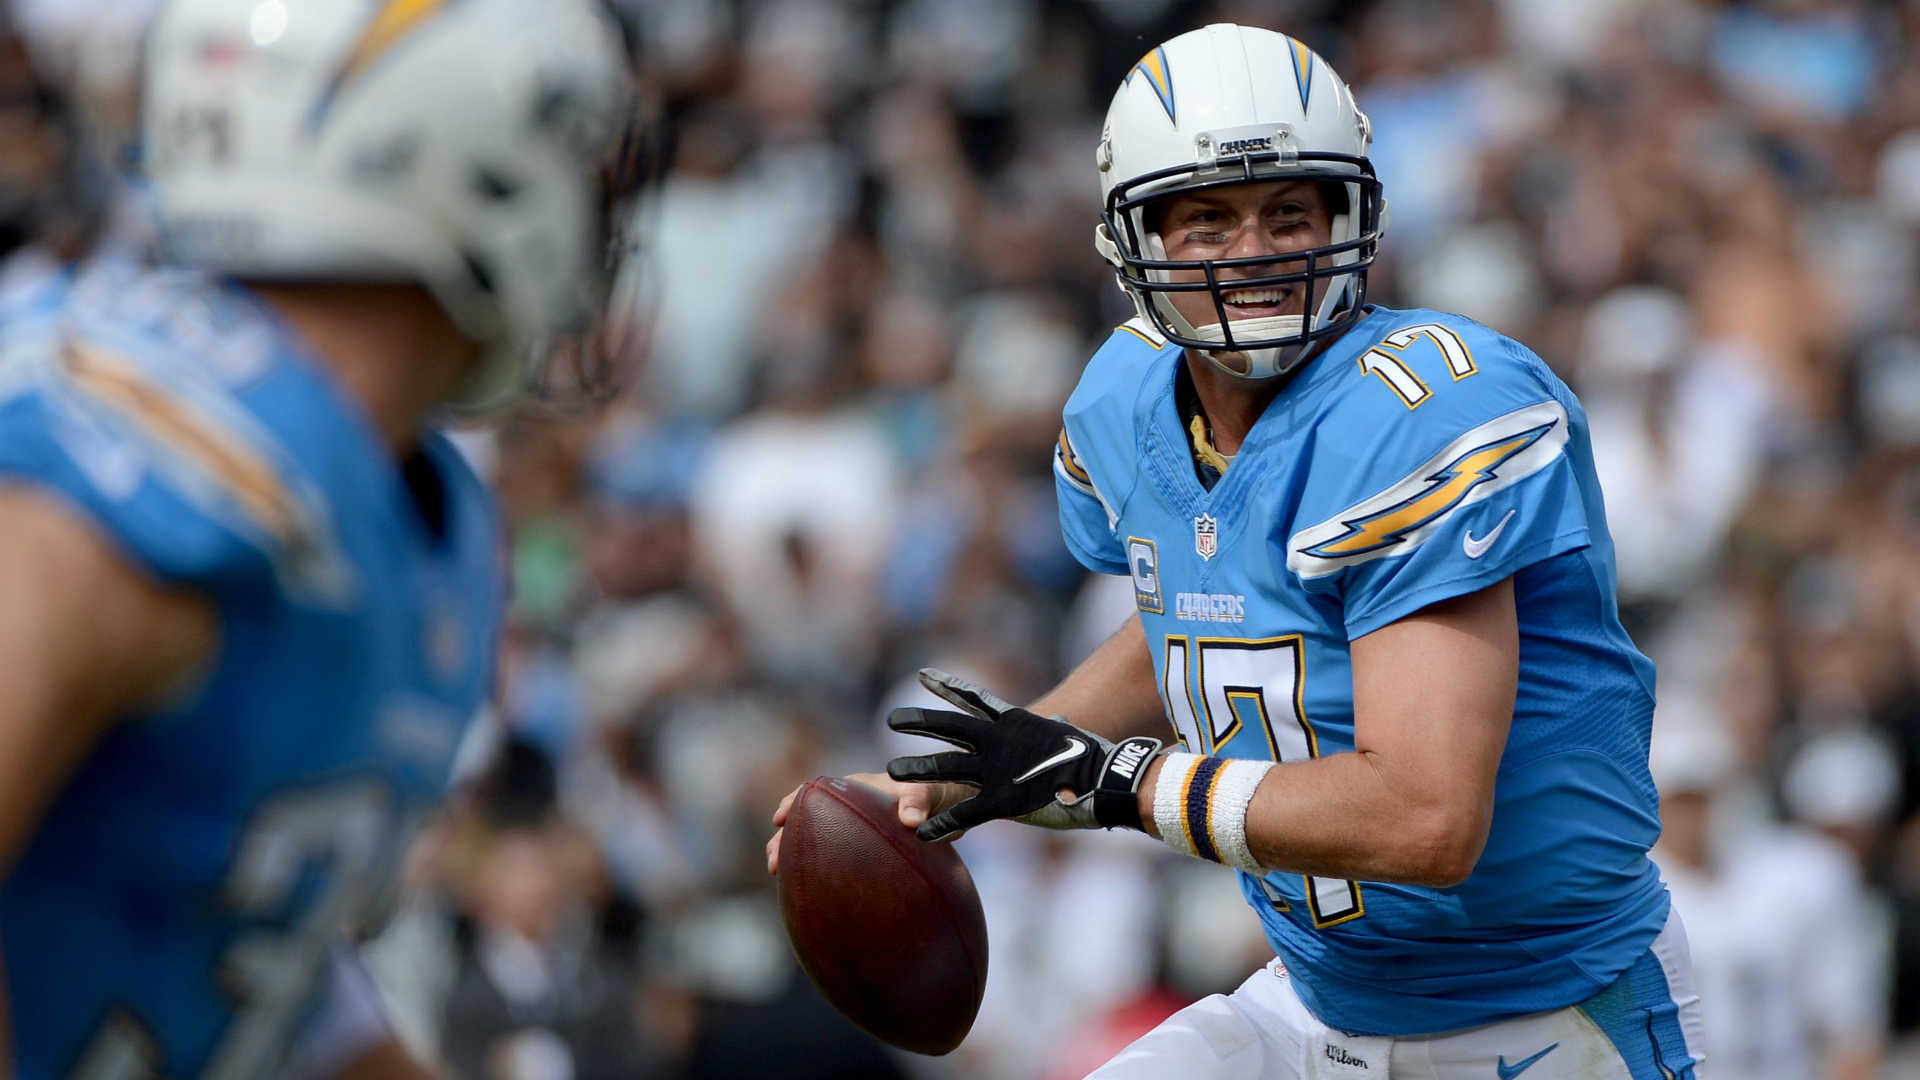 philliprivers - QB - San Diego Chargers